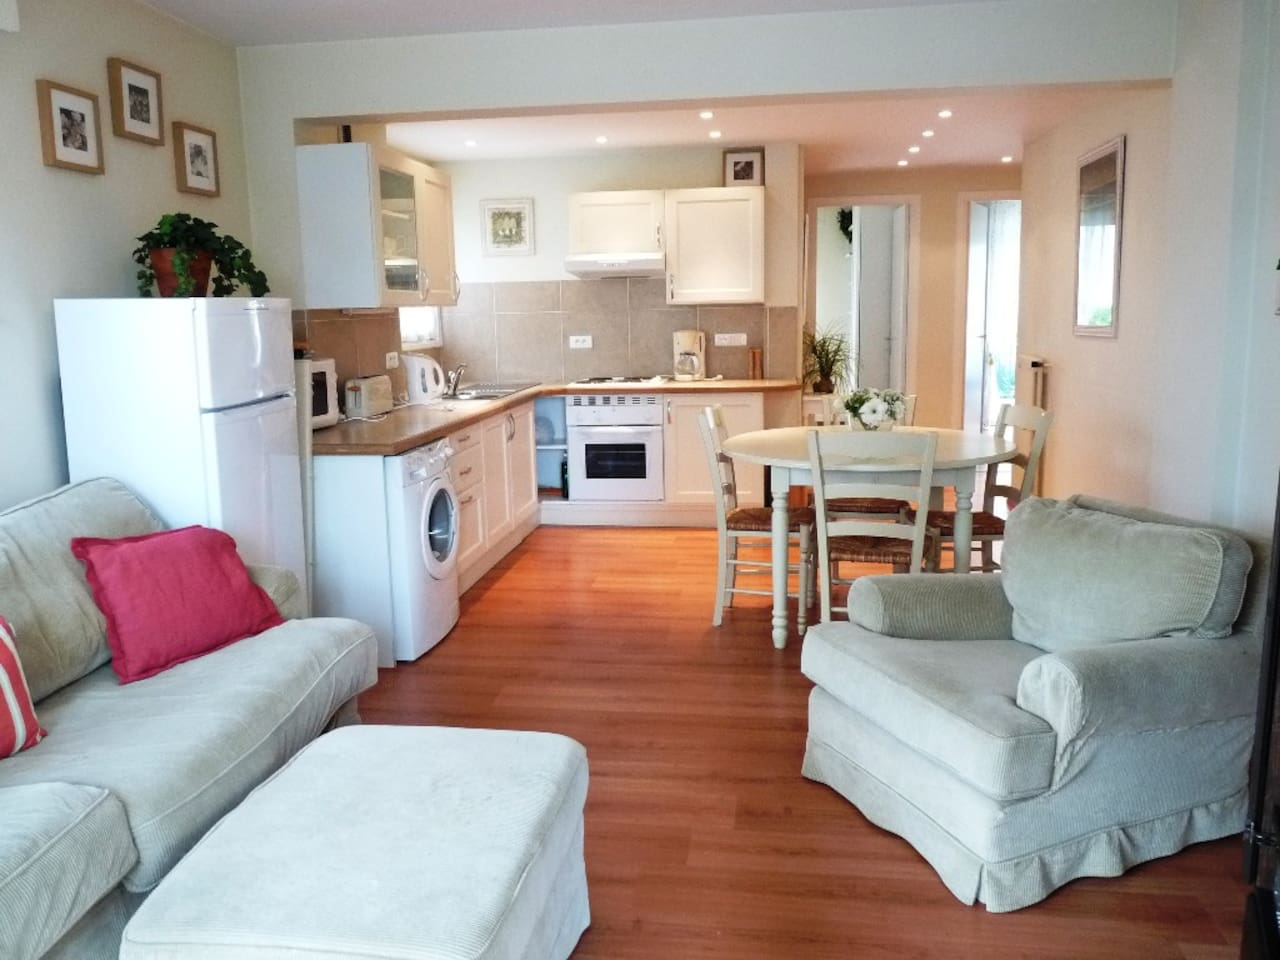 Spacious and light apartment with lovely soft furnishings